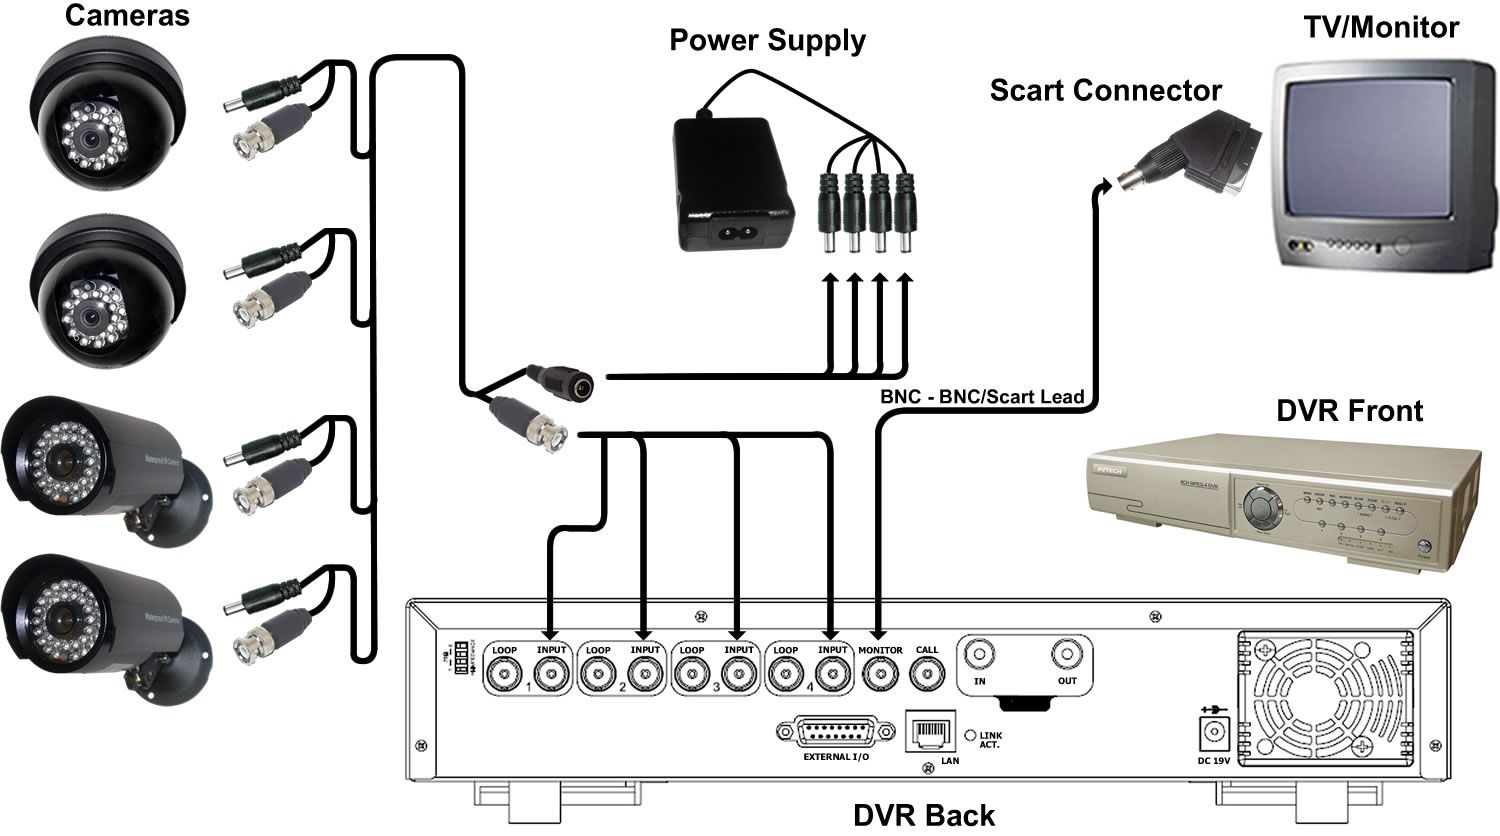 dvr wiring diagrams simple wiring schema samsung wiring diagram cctv camera wiring diagram wiring diagram [ 1500 x 836 Pixel ]